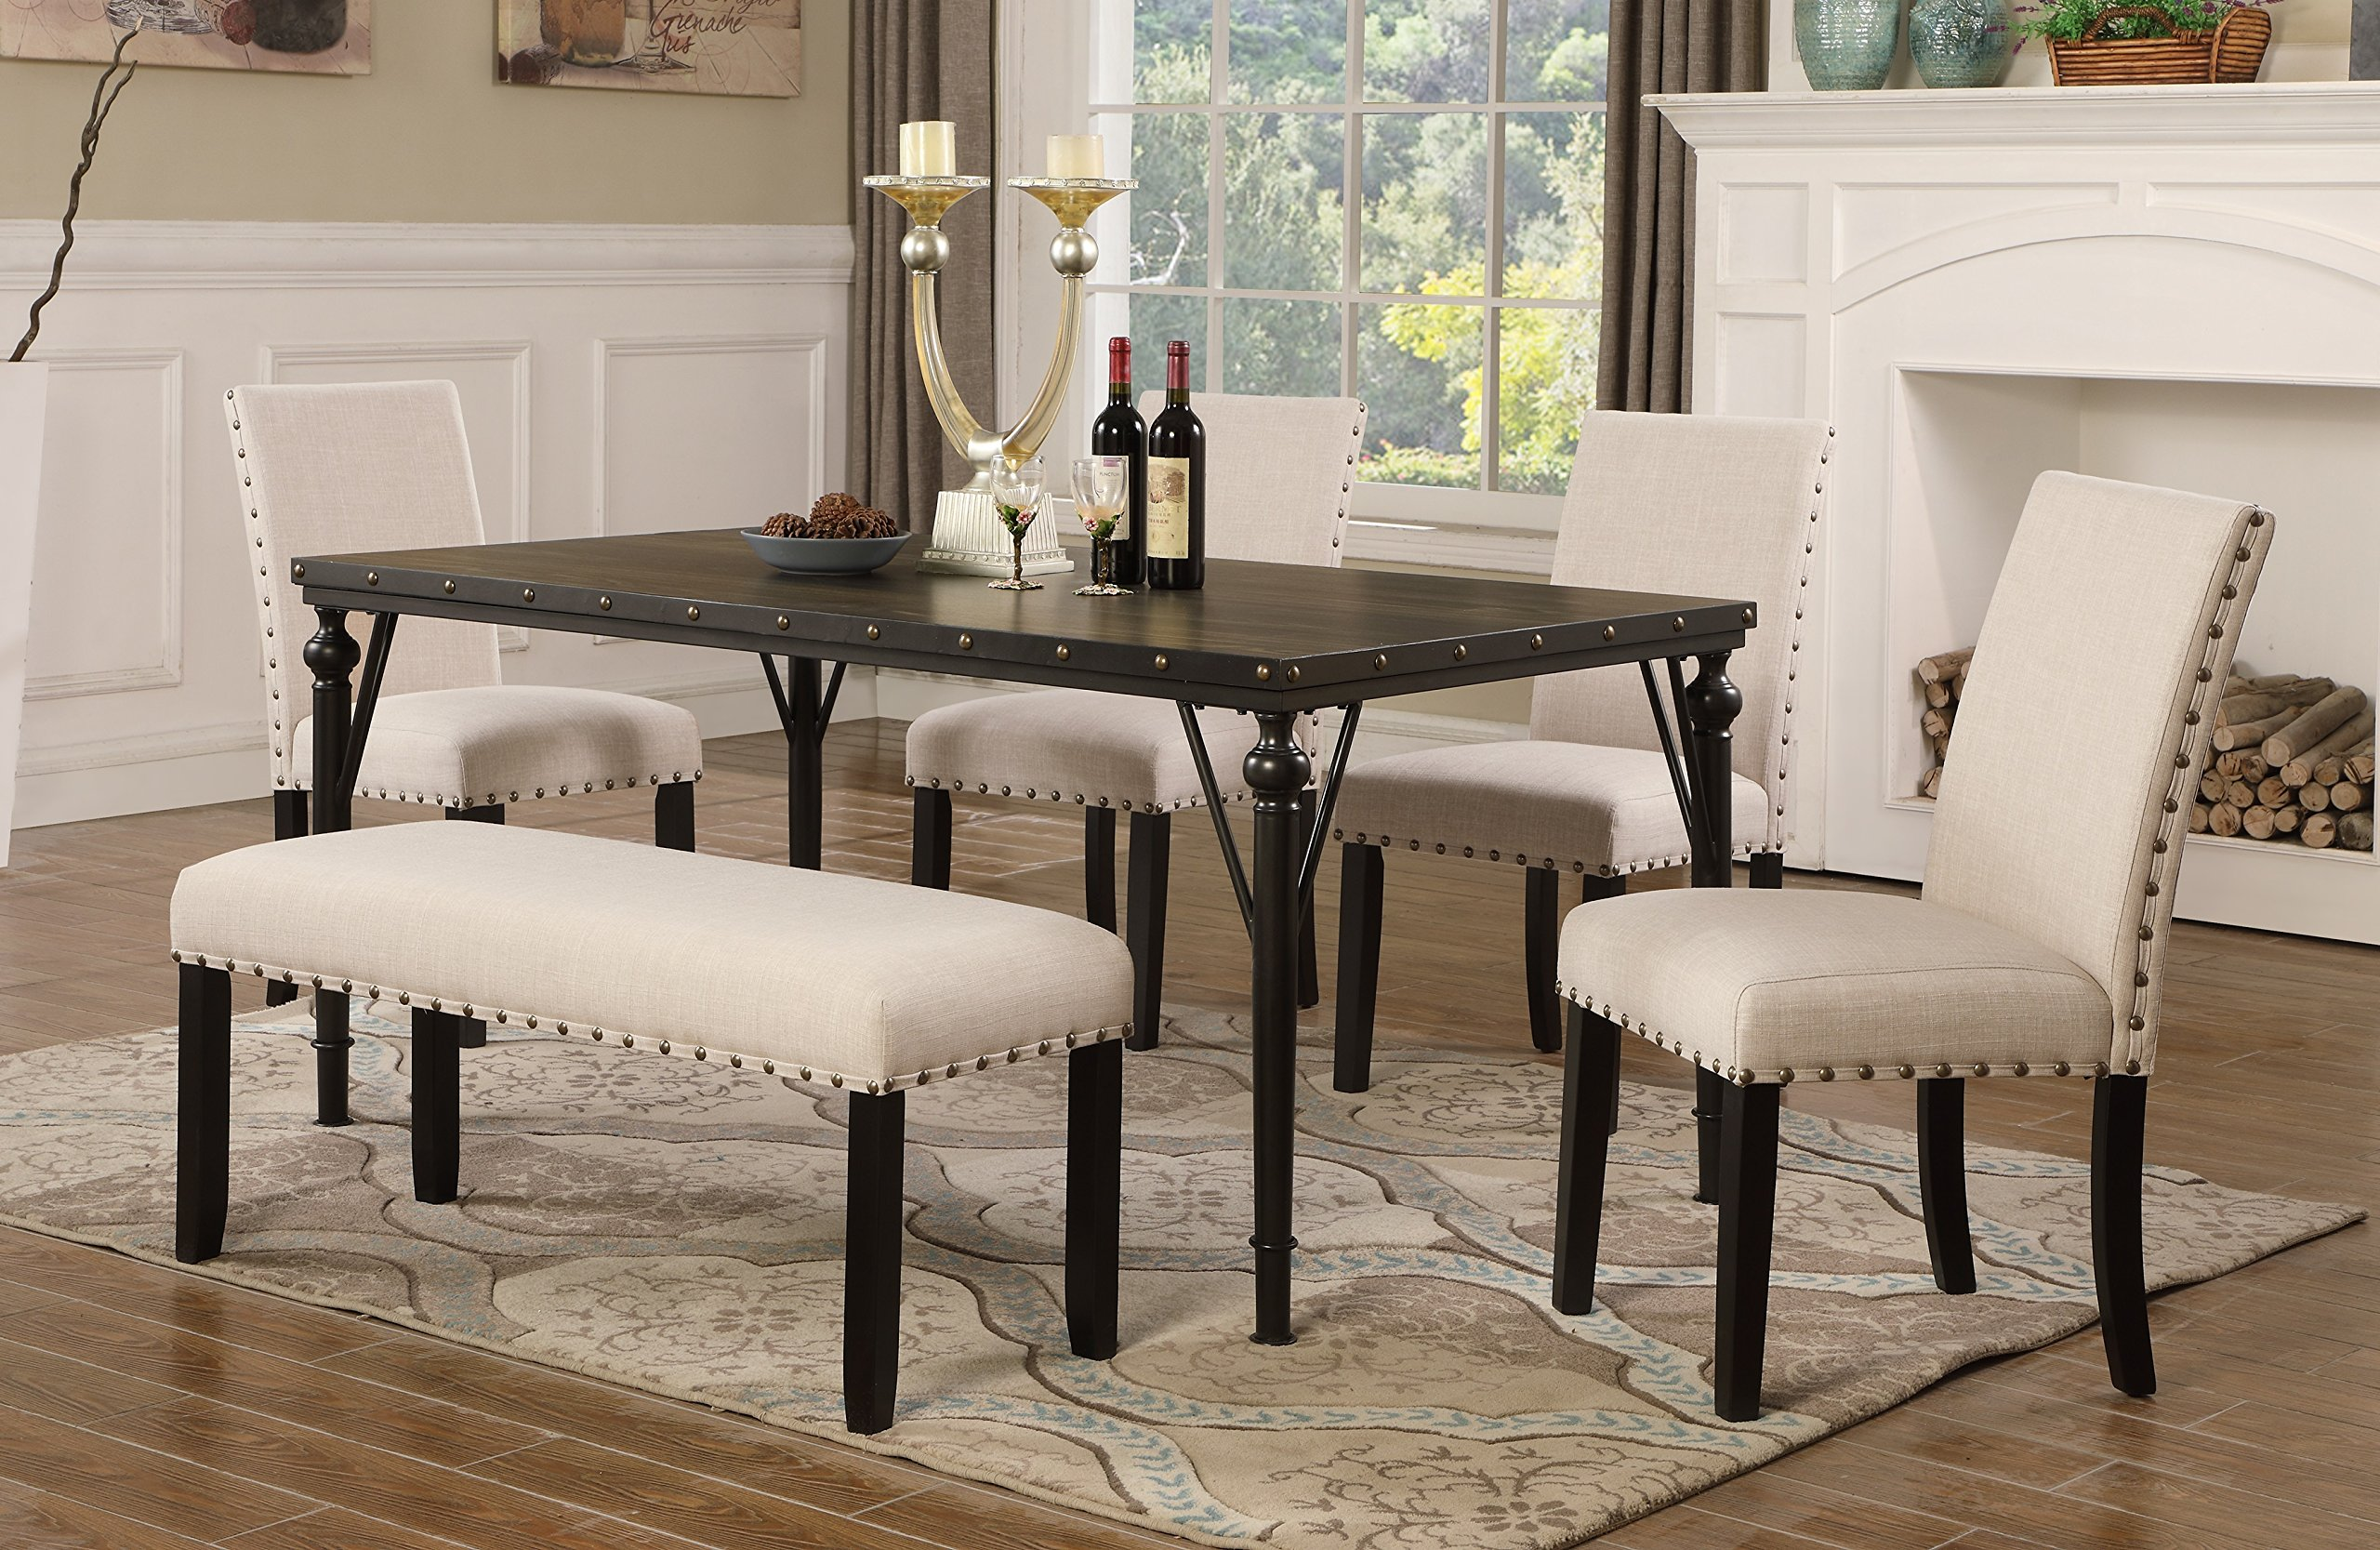 Roundhill Furniture T163-C162TA-C162TA-CB162TA Biony 6-Piece Wood Dining Set with Nailhead Chairs and Bench, Tan by Roundhill Furniture (Image #7)